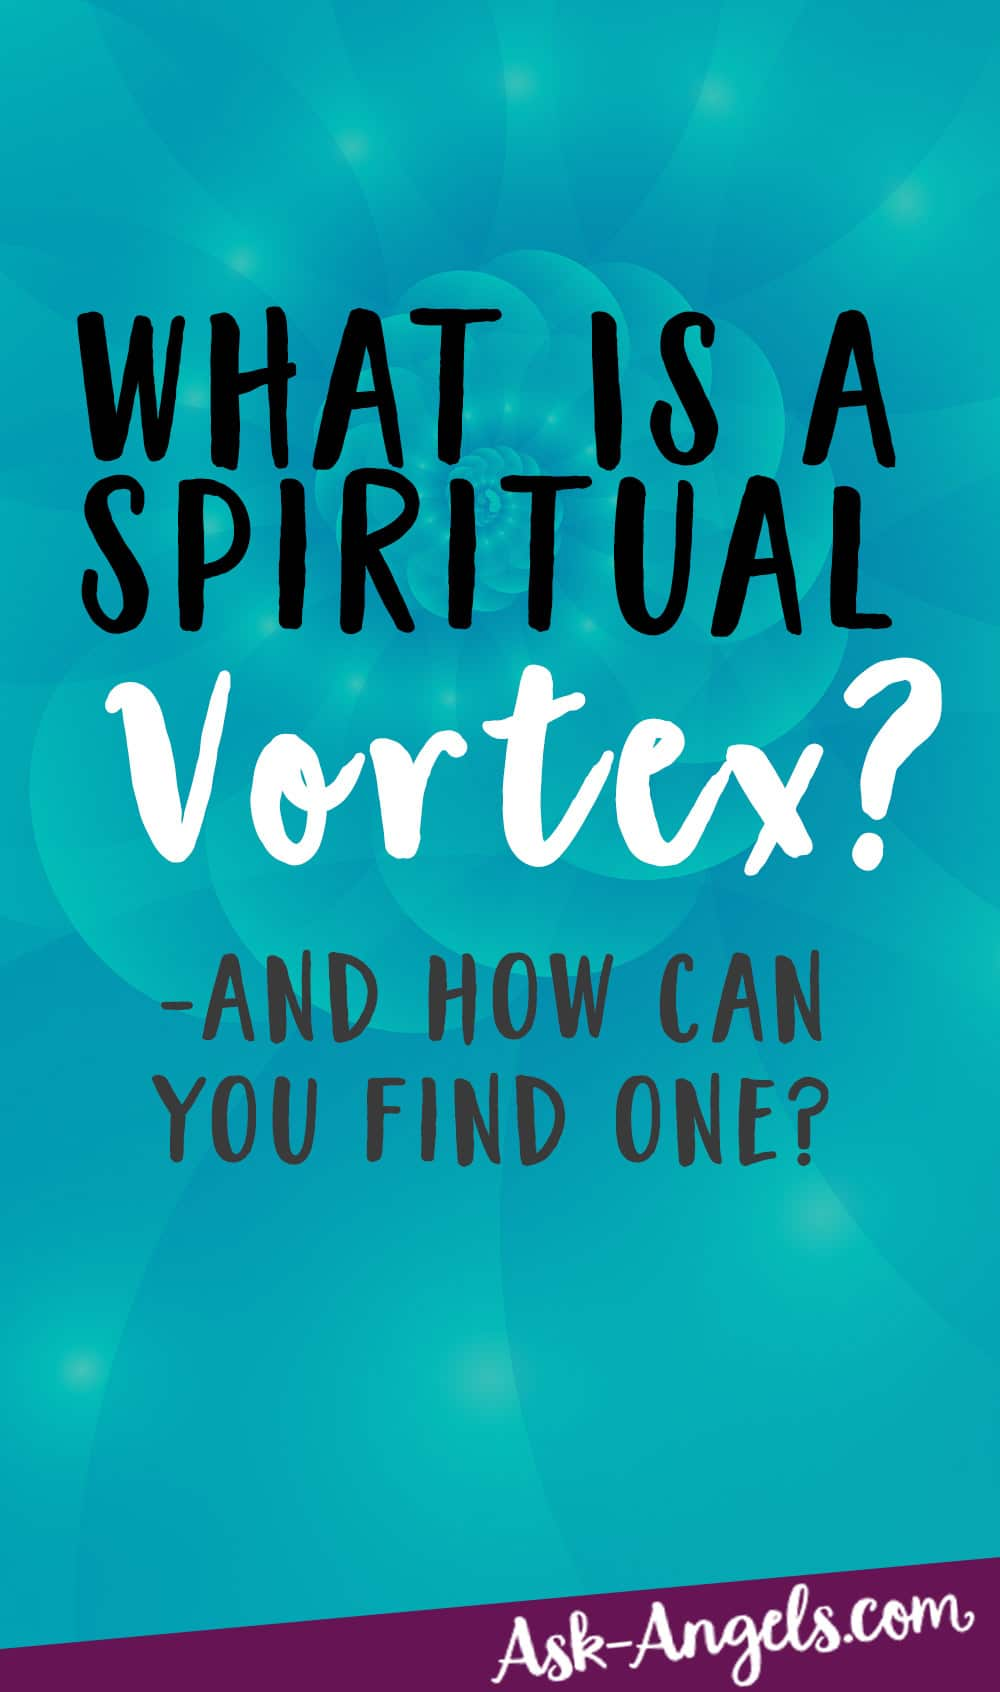 What Is A Vortex? -And How Can You Find One?